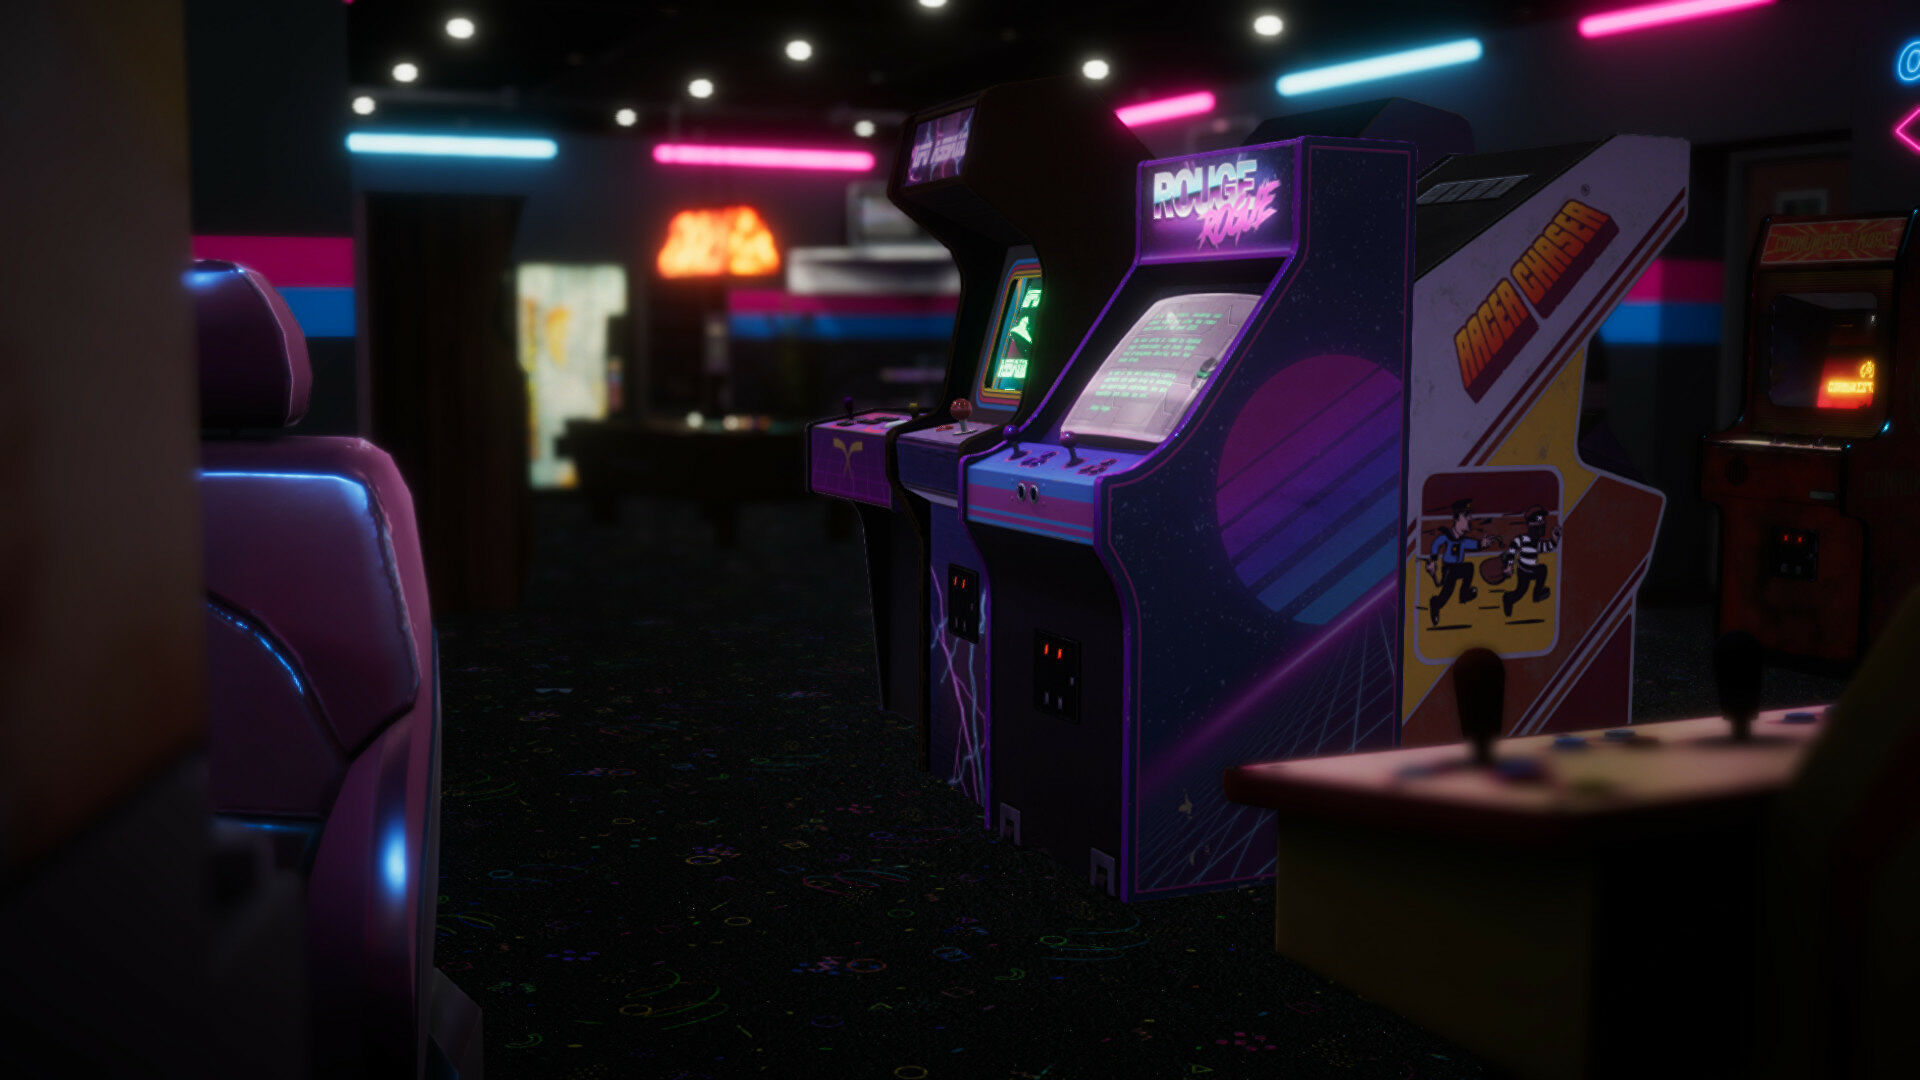 Flip your dad's crap laundromat into a local hotspot in Arcade Paradise